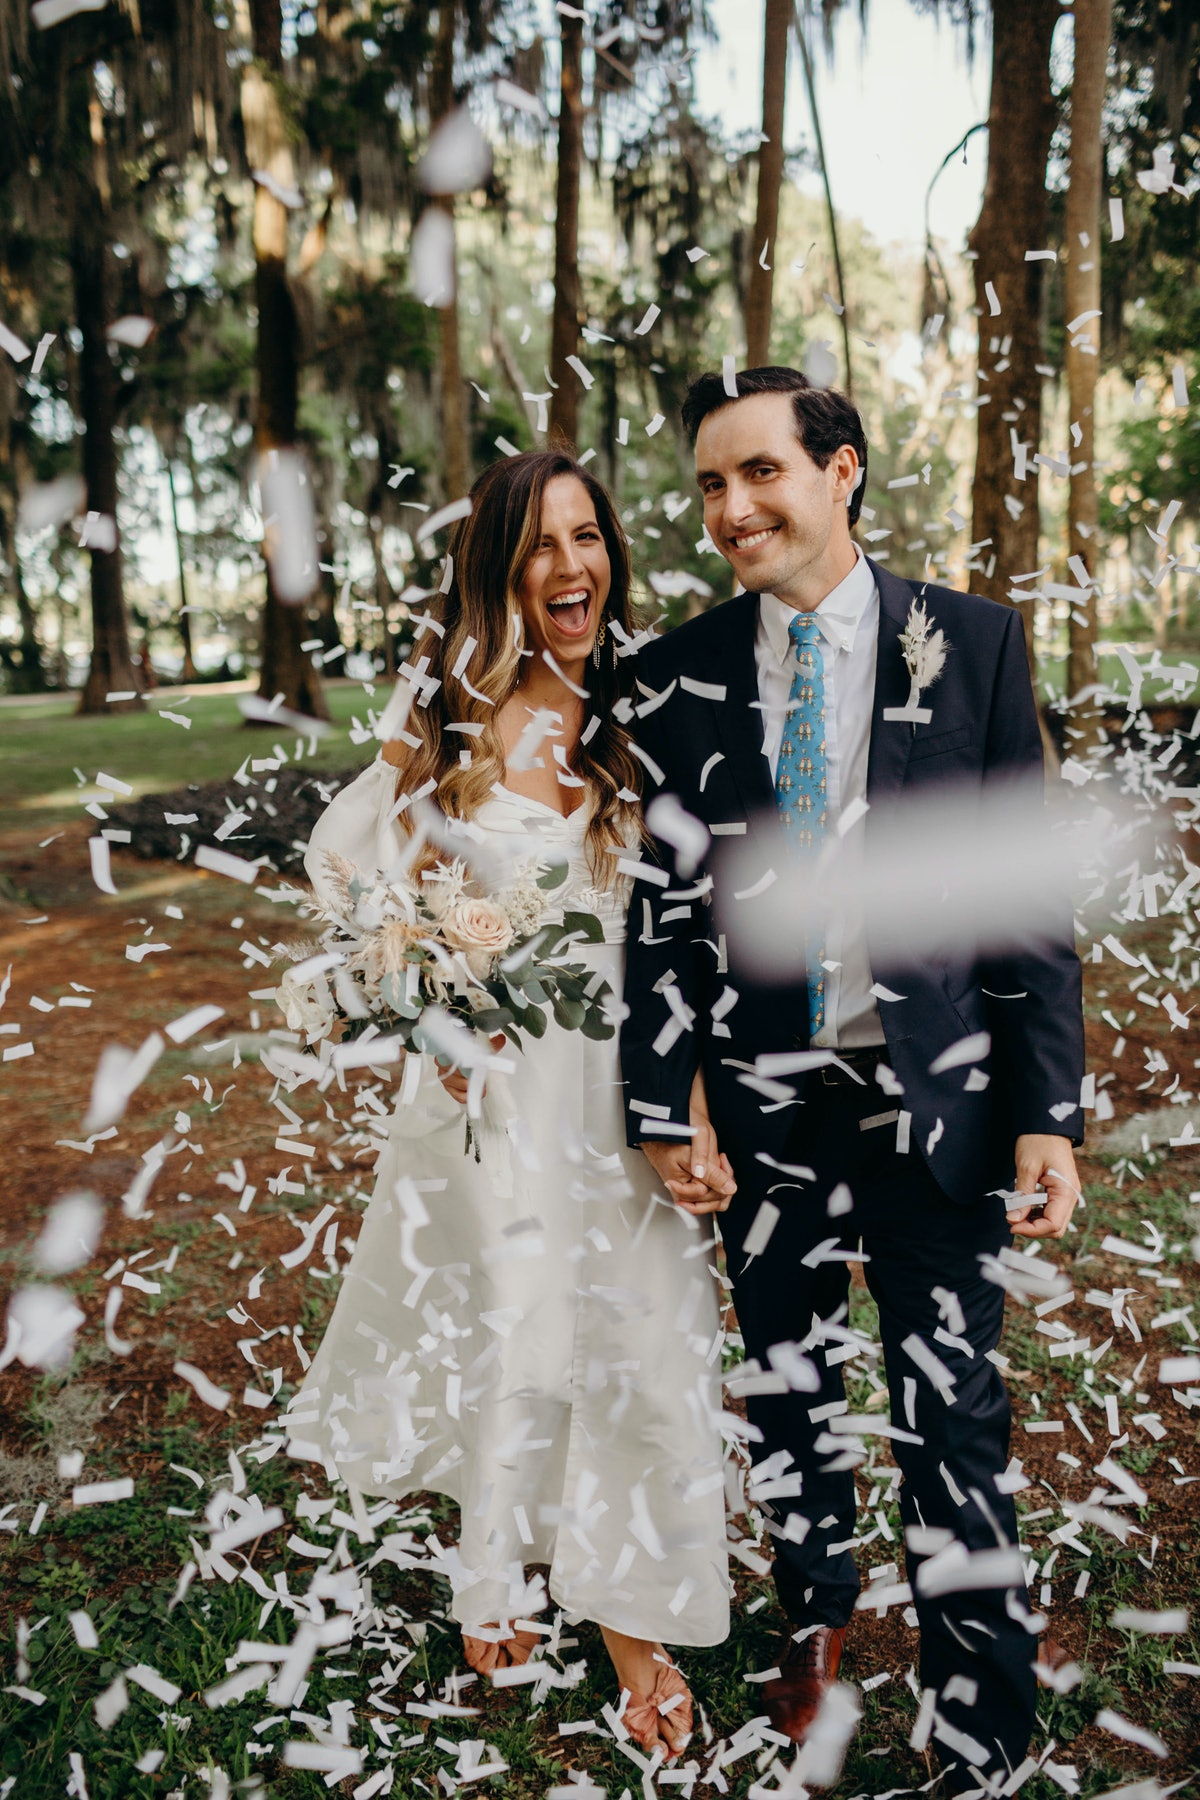 Read these quarantine wedding stories when you need a pick-me-up.